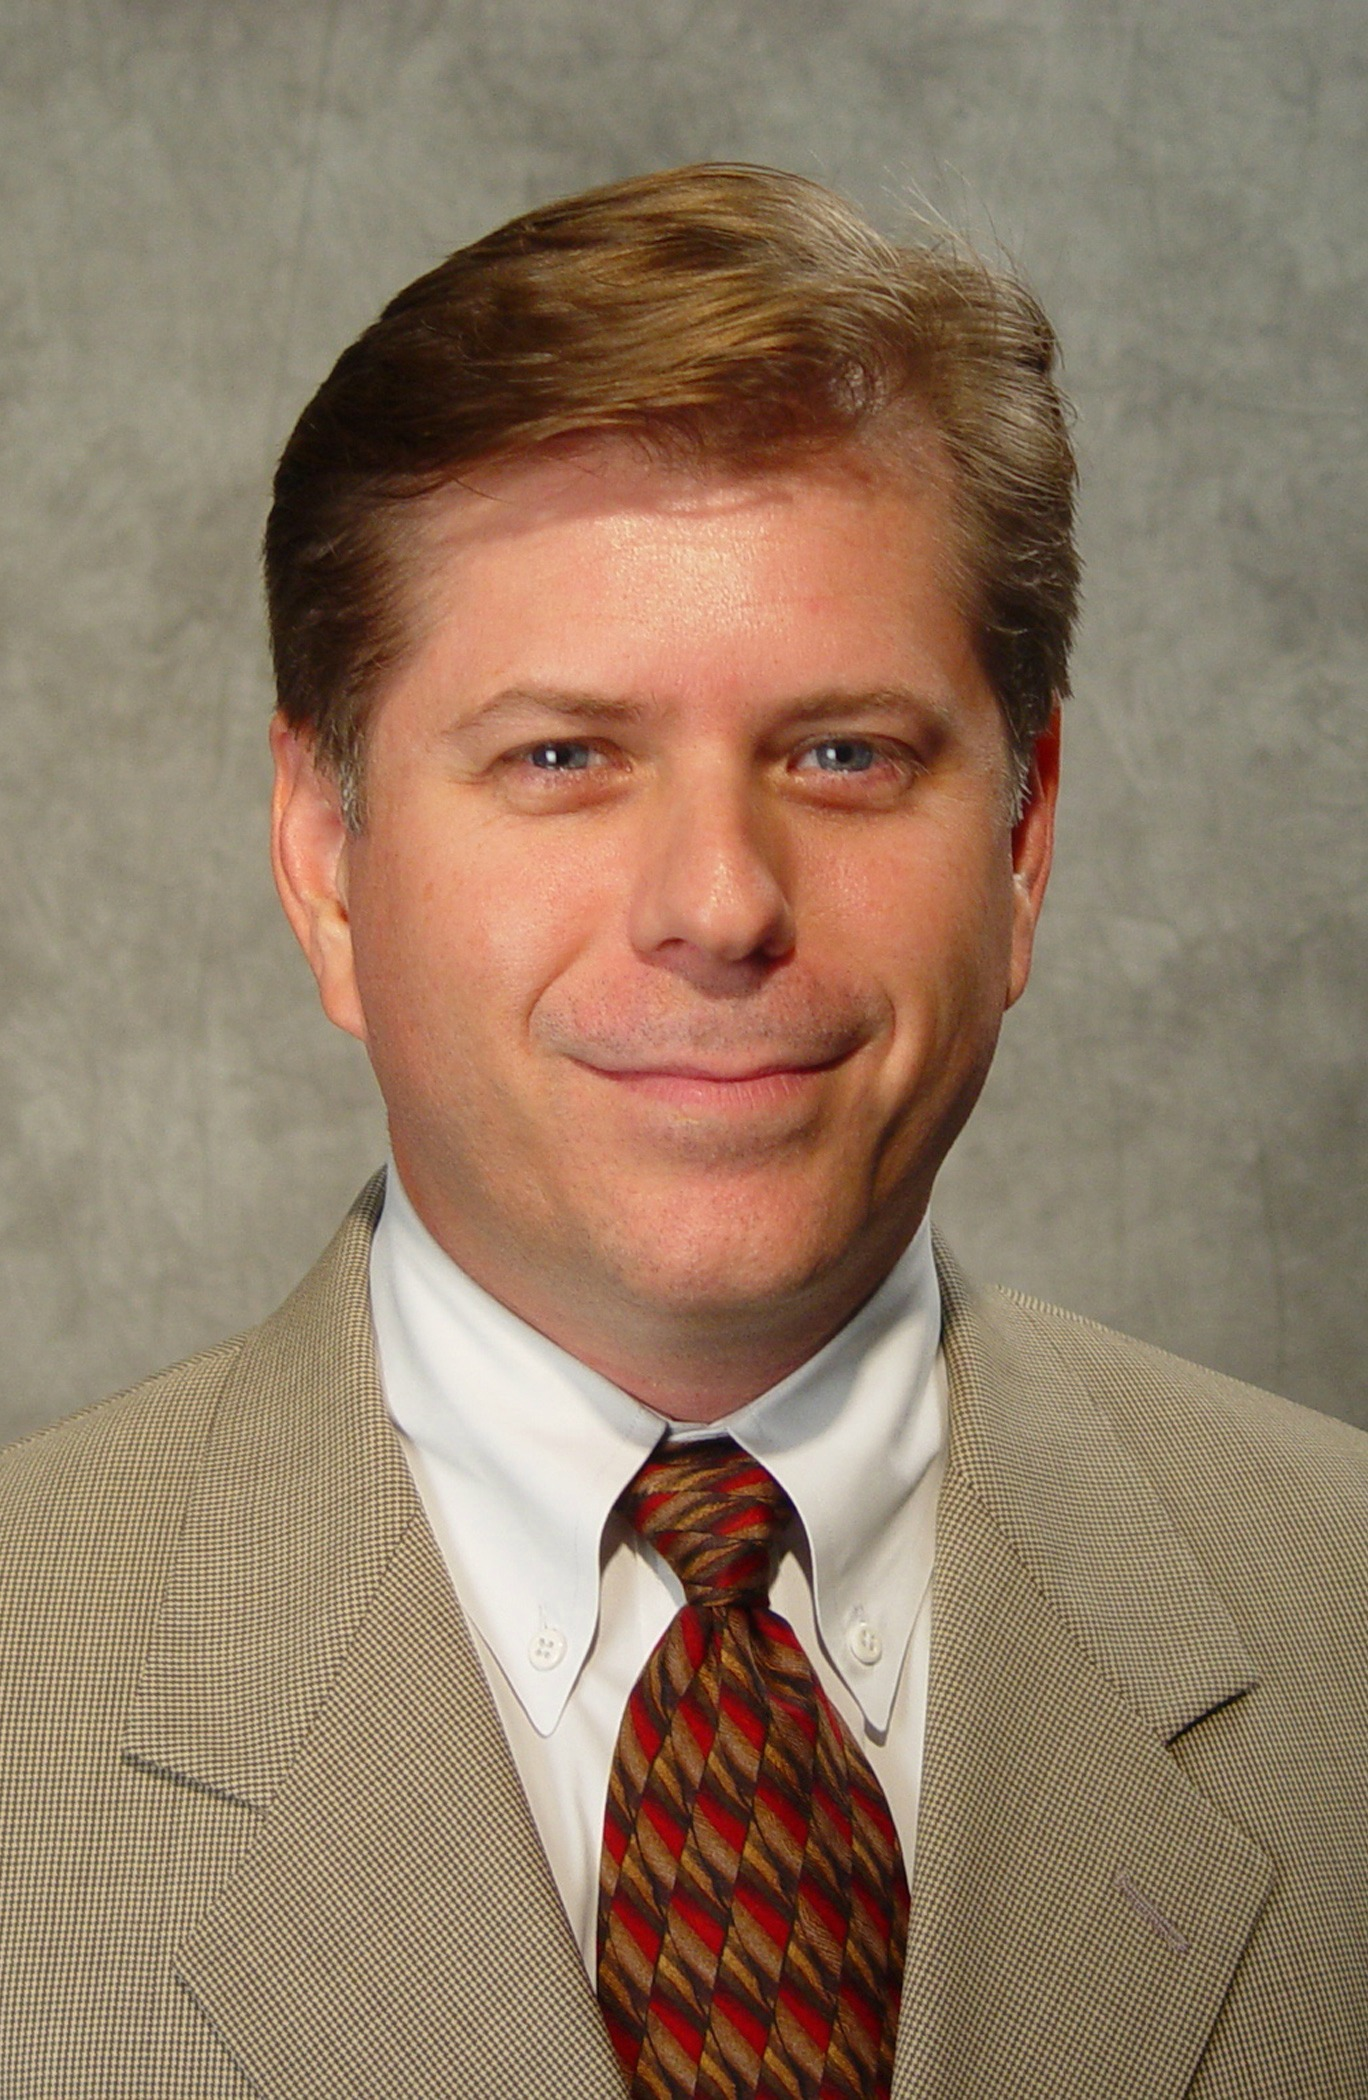 Jeff Saunders has rejoined Dorsey's Corporate Group in Minneapolis as Of Counsel. (Photo: Dorsey & Whitney LLP)